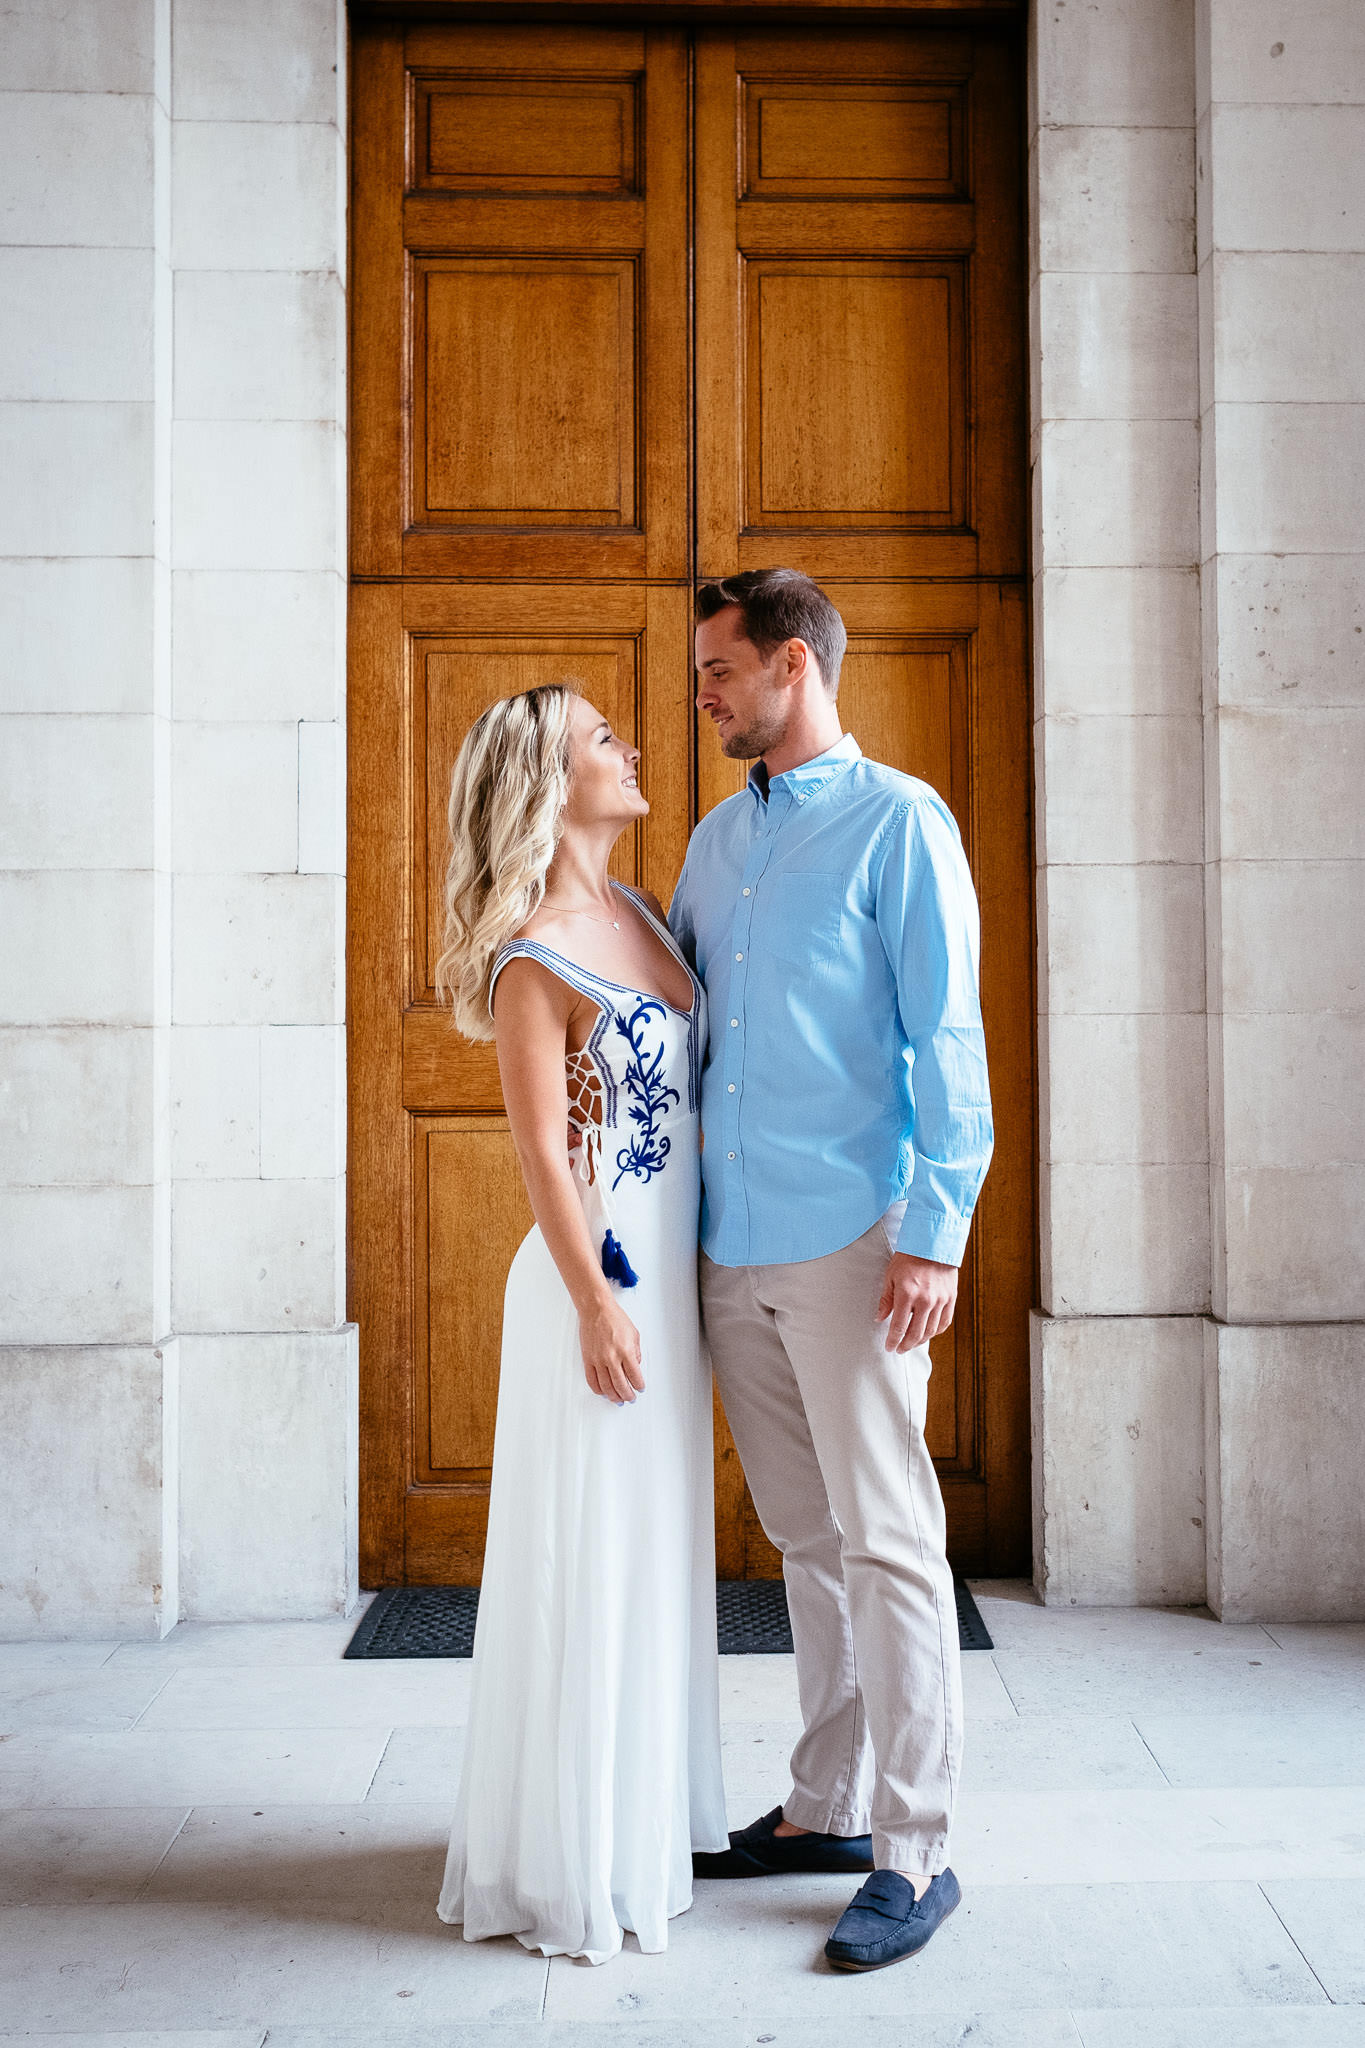 engaged couple standing by church door during their engagement photo session in Trinity College Dublin Ireland